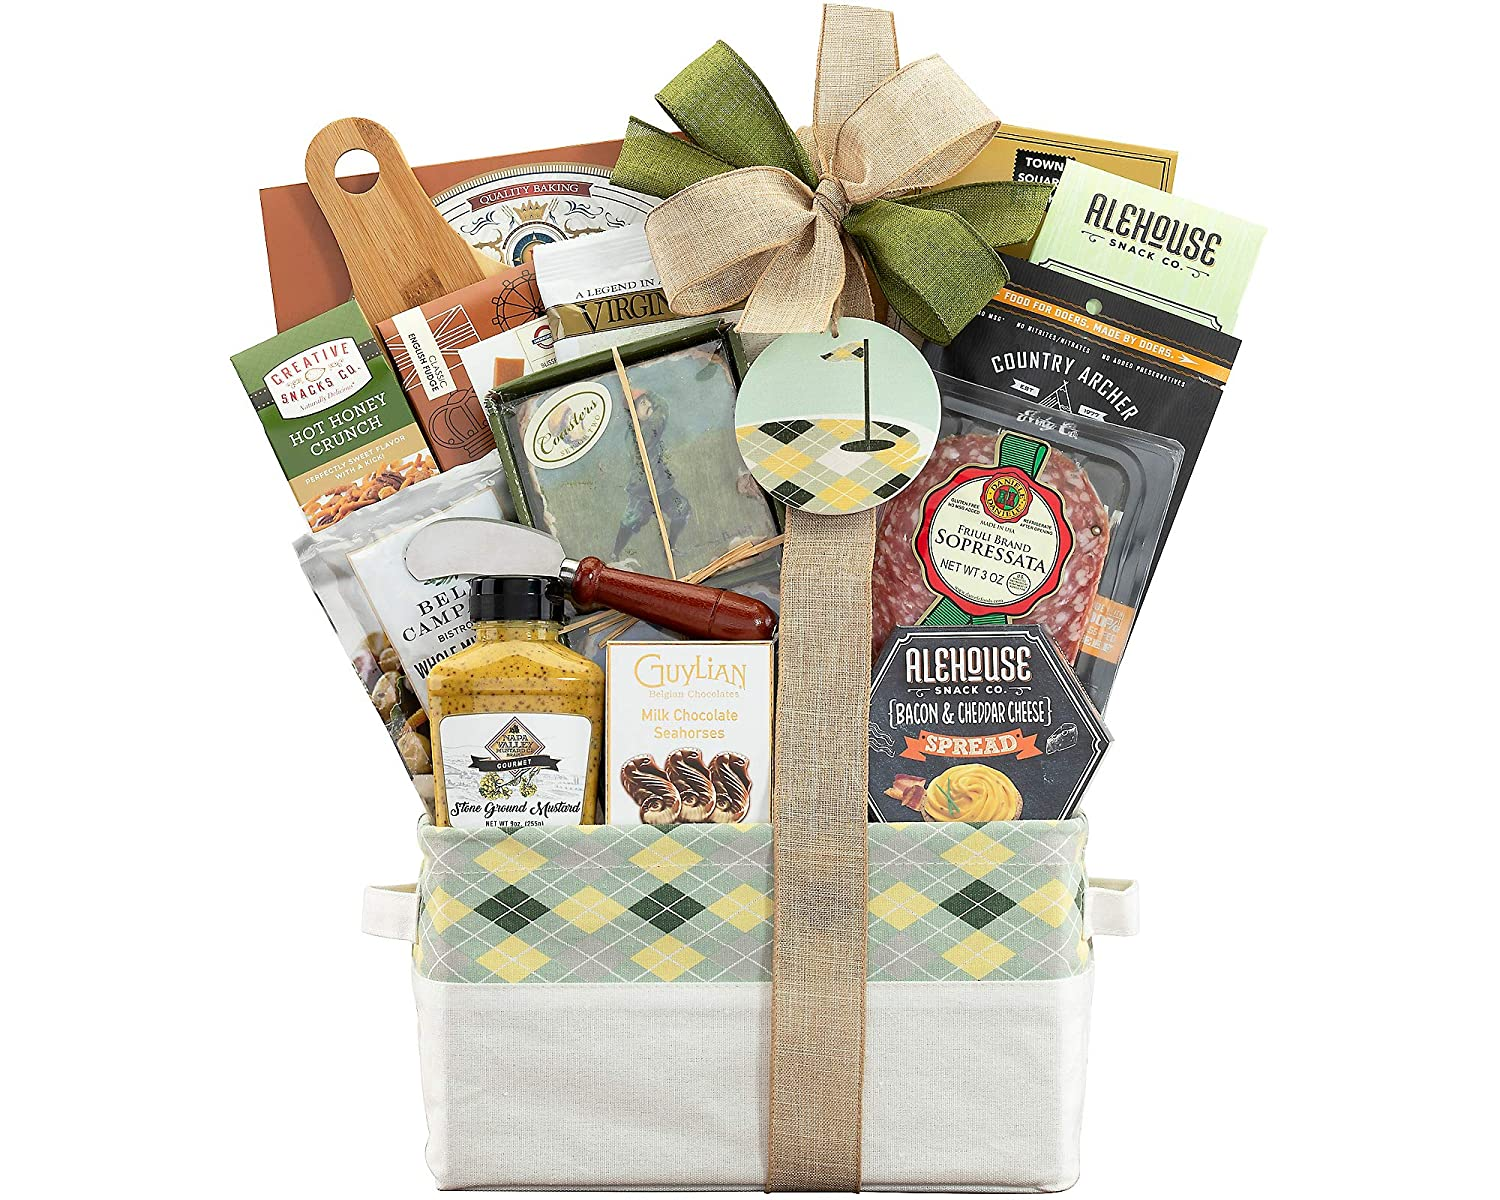 Golf Gift Basket - The Hole in One Golf Gift Basket by Wine Country Gift Baskets